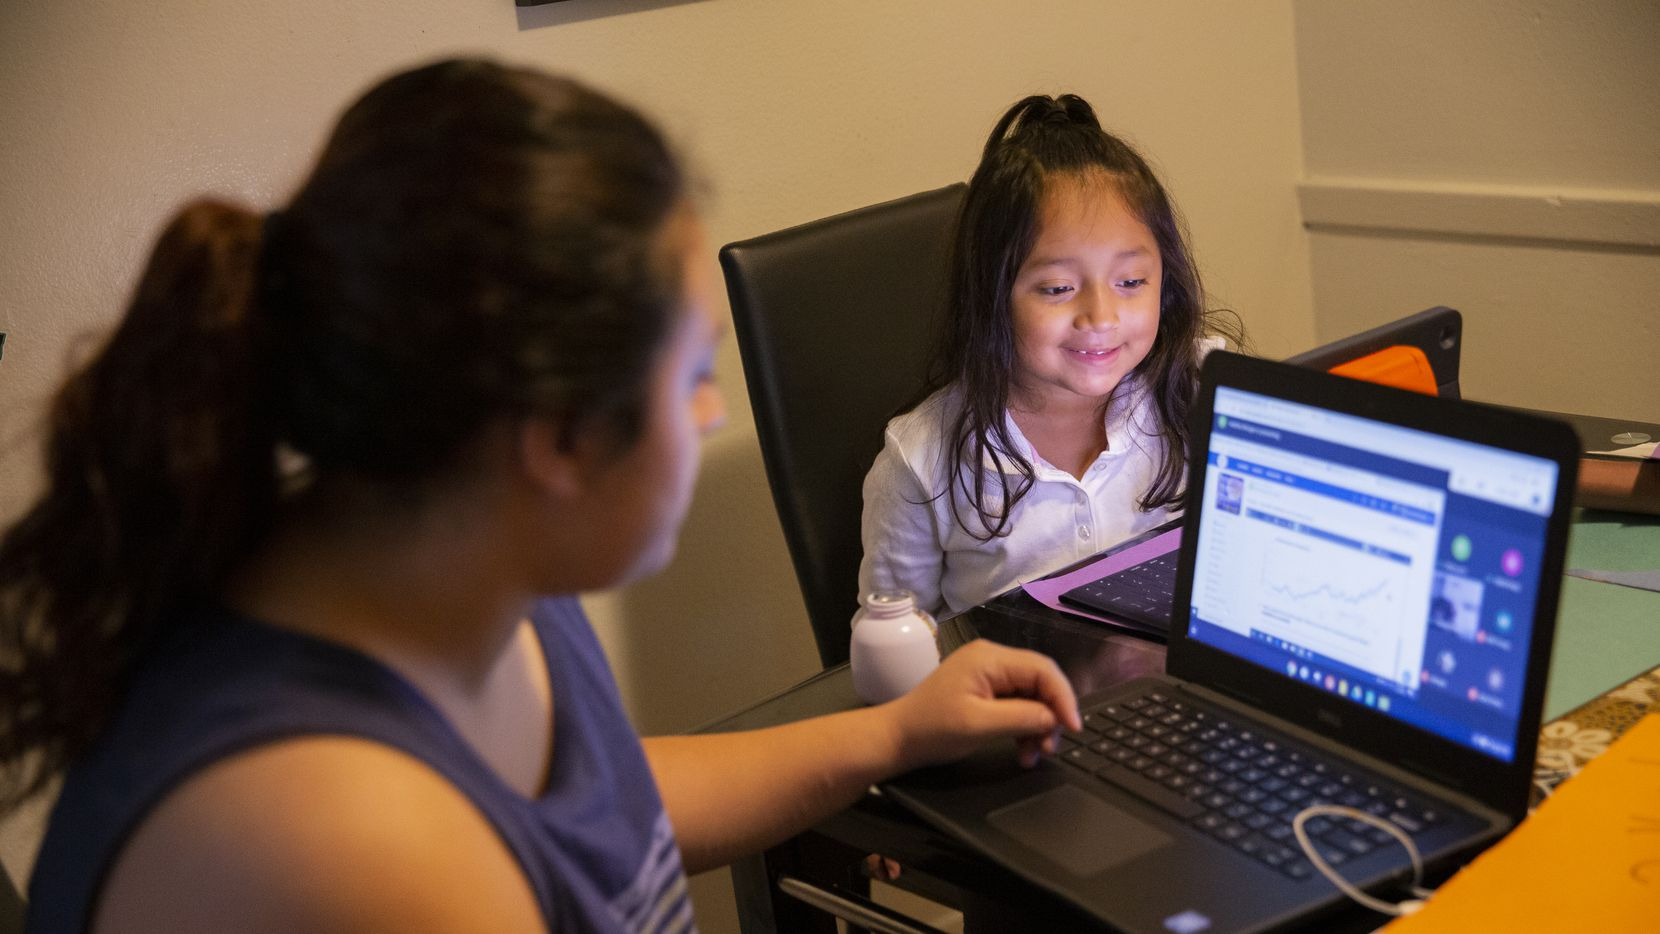 Hebreny Cojulum, 19, attends her integrated physics and chemistry class while sister Daysha Cojulum, 5, watches videos after her class at the kitchen table on Sept. 16, 2020 in Northwest Dallas. A little more than half of Dallas ISD families have said they will return to in-person learning when the district reopens campuses, according to recent survey results.